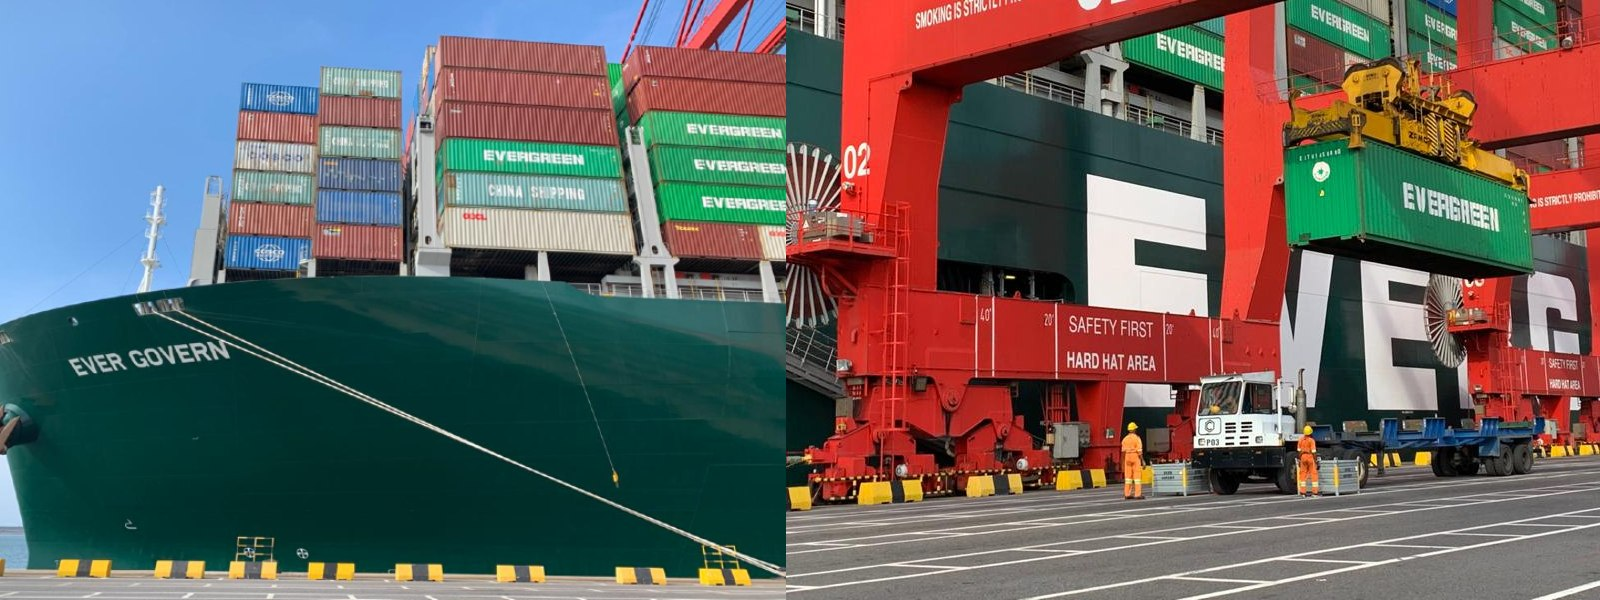 82 garbage-filled freight containers to be shipped back to the UK